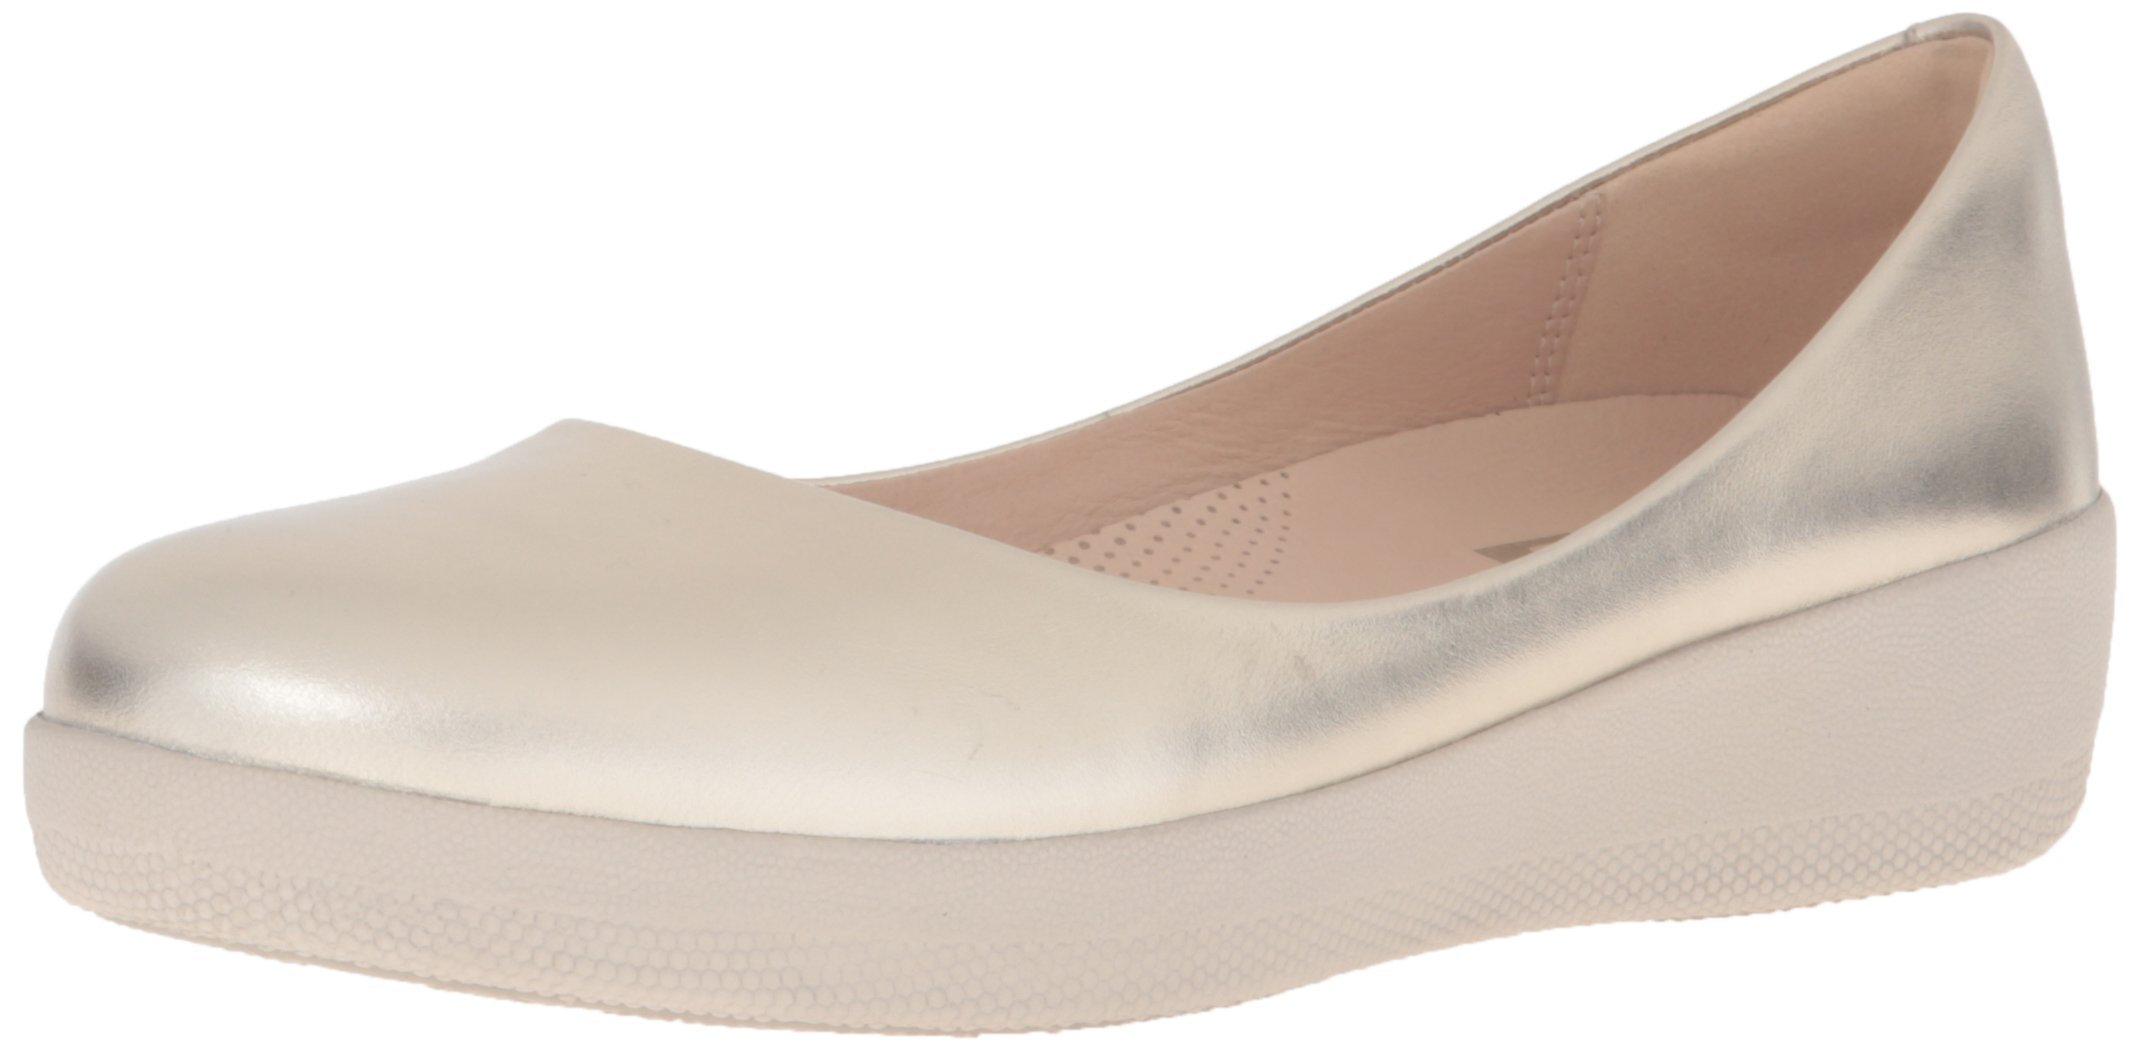 FitFlop Women's Leather Superballerina Flats Pale Gold 06 & Sunscreen